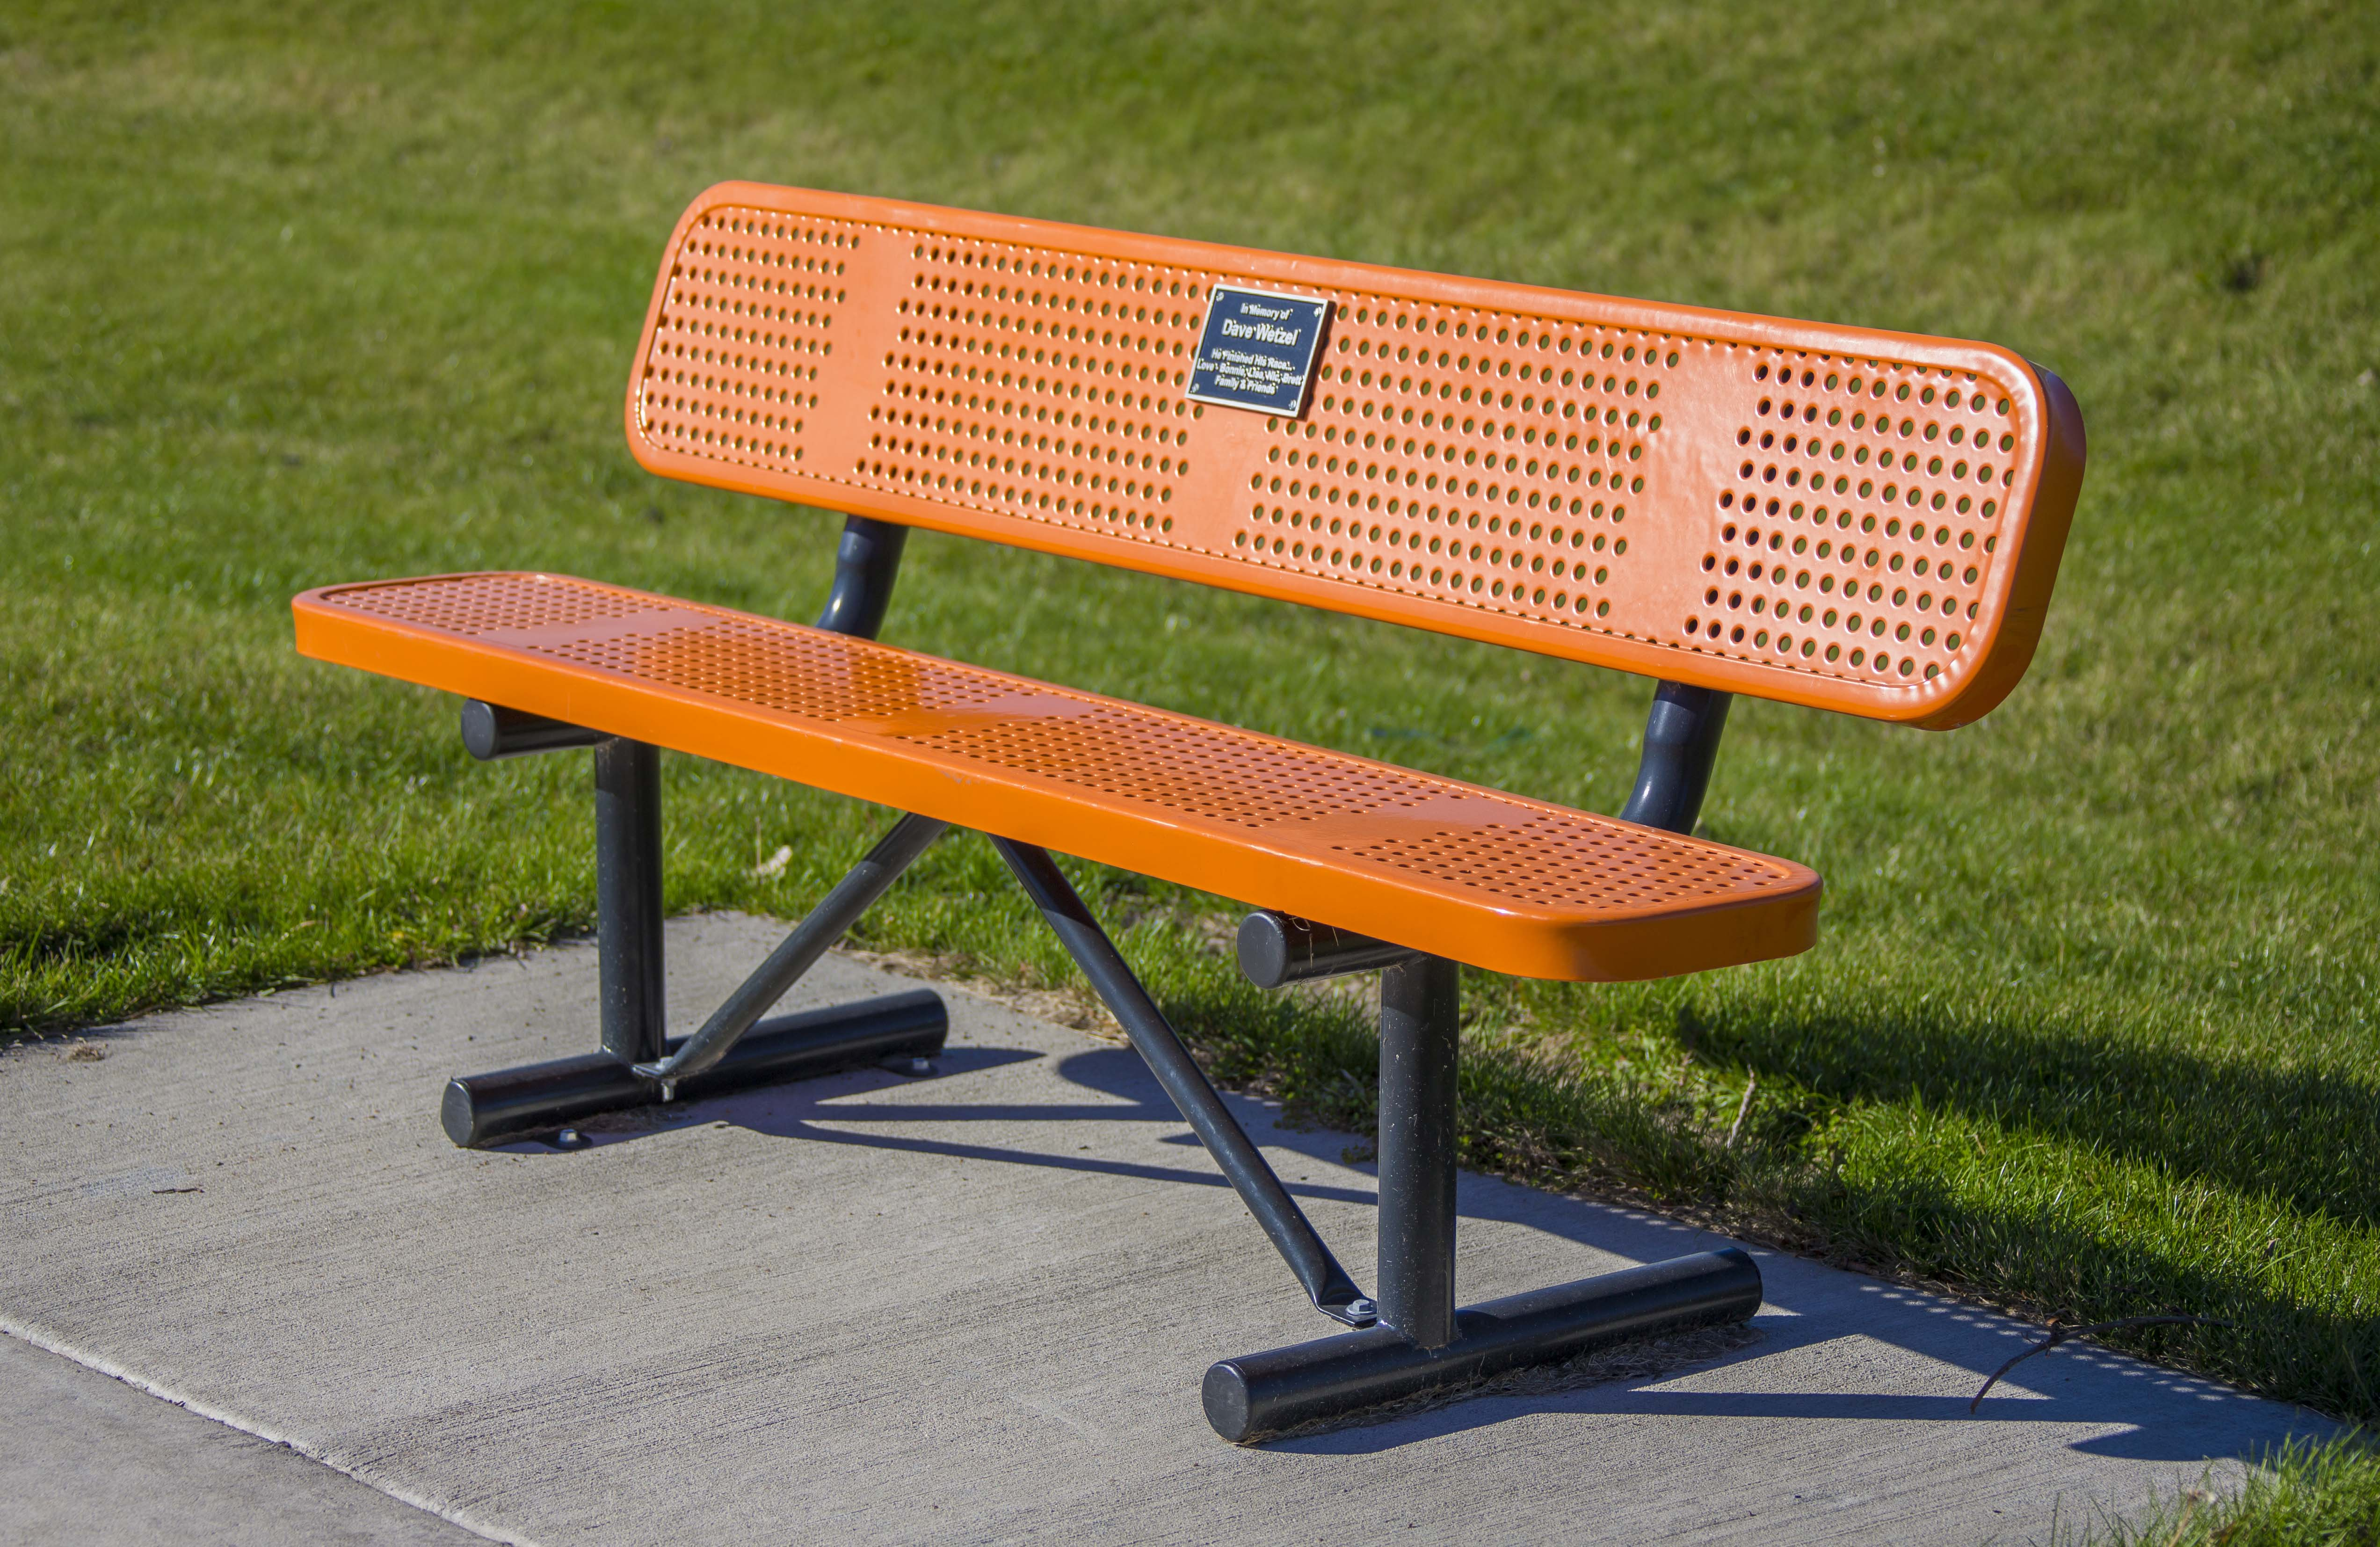 Prime Perforated Steel Park Bench Thermoplastic Coated Bralicious Painted Fabric Chair Ideas Braliciousco